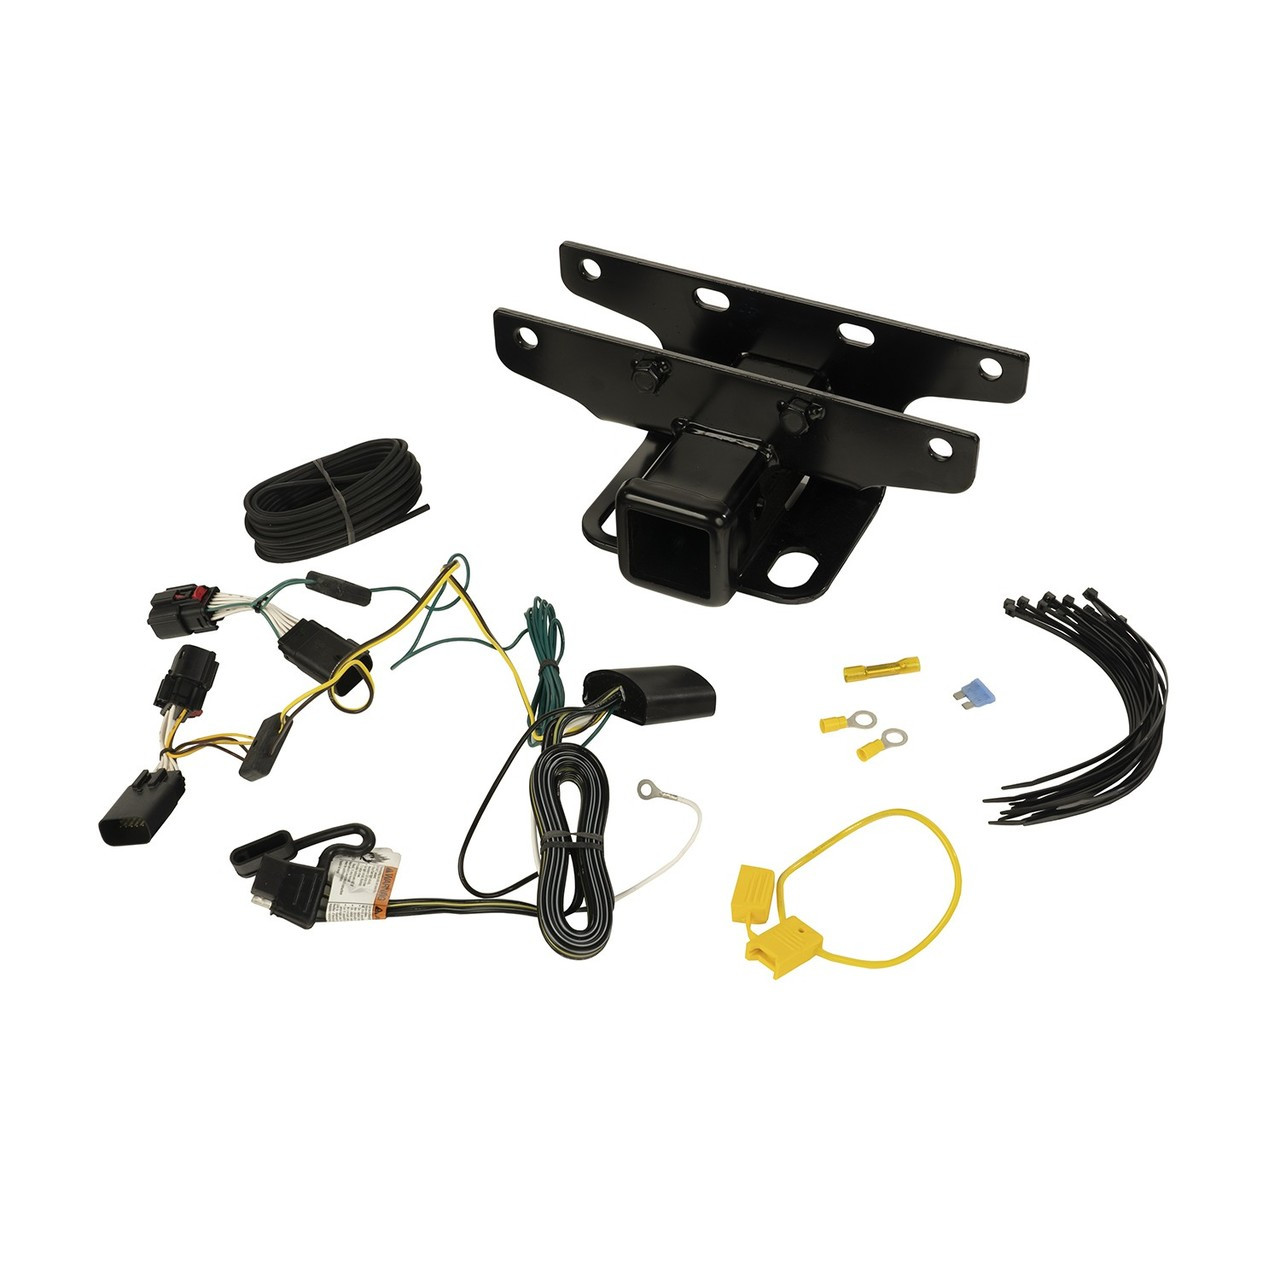 small resolution of jeep wrangler jl receiver hitch kit w wiring harness 18 19 jl